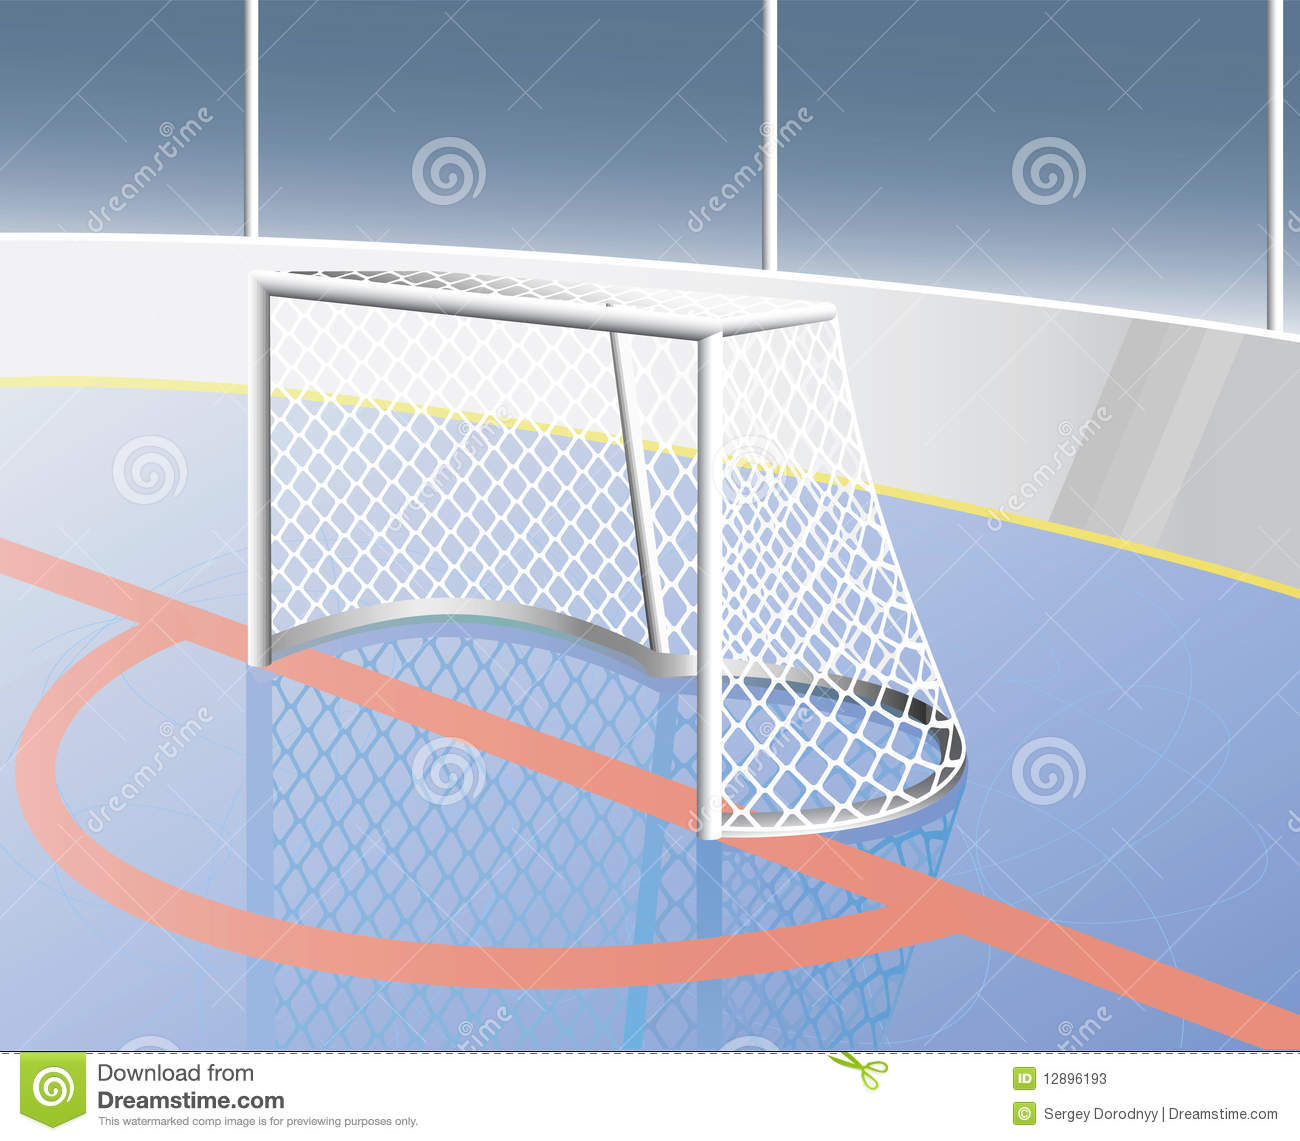 how to make hockey goal boards